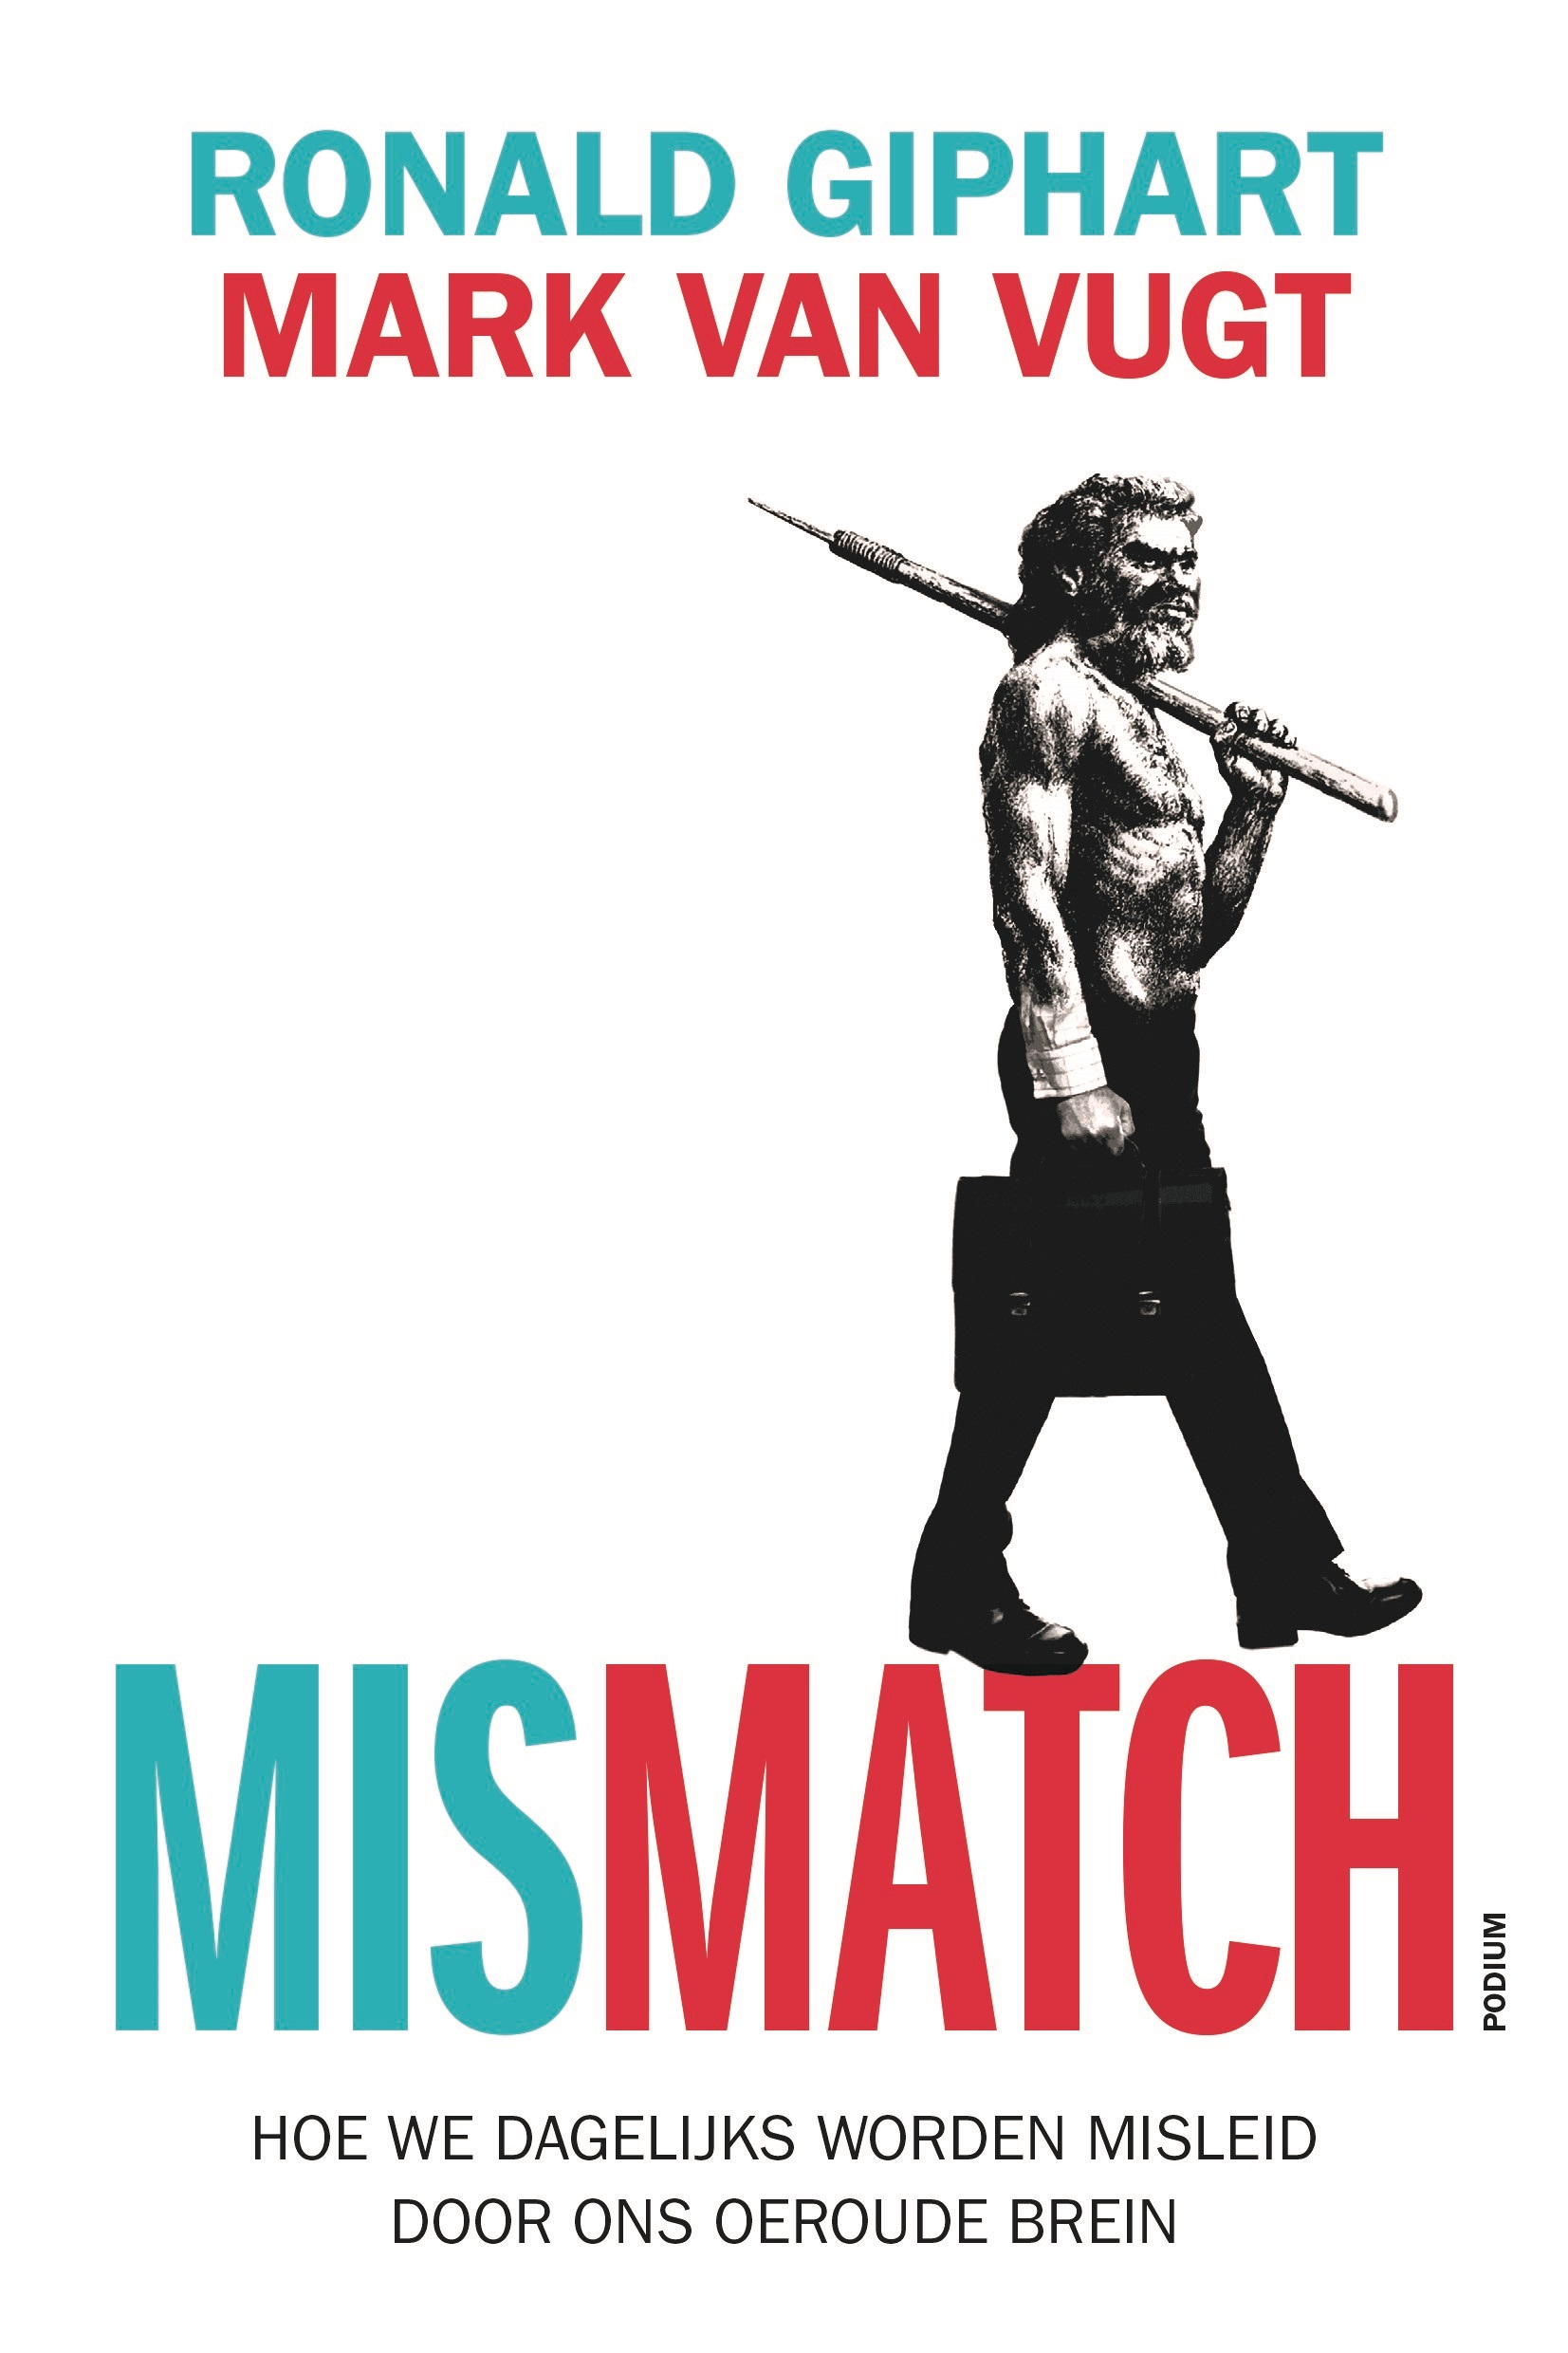 Mismatch – Ronald Giphart & Mark van Vugt